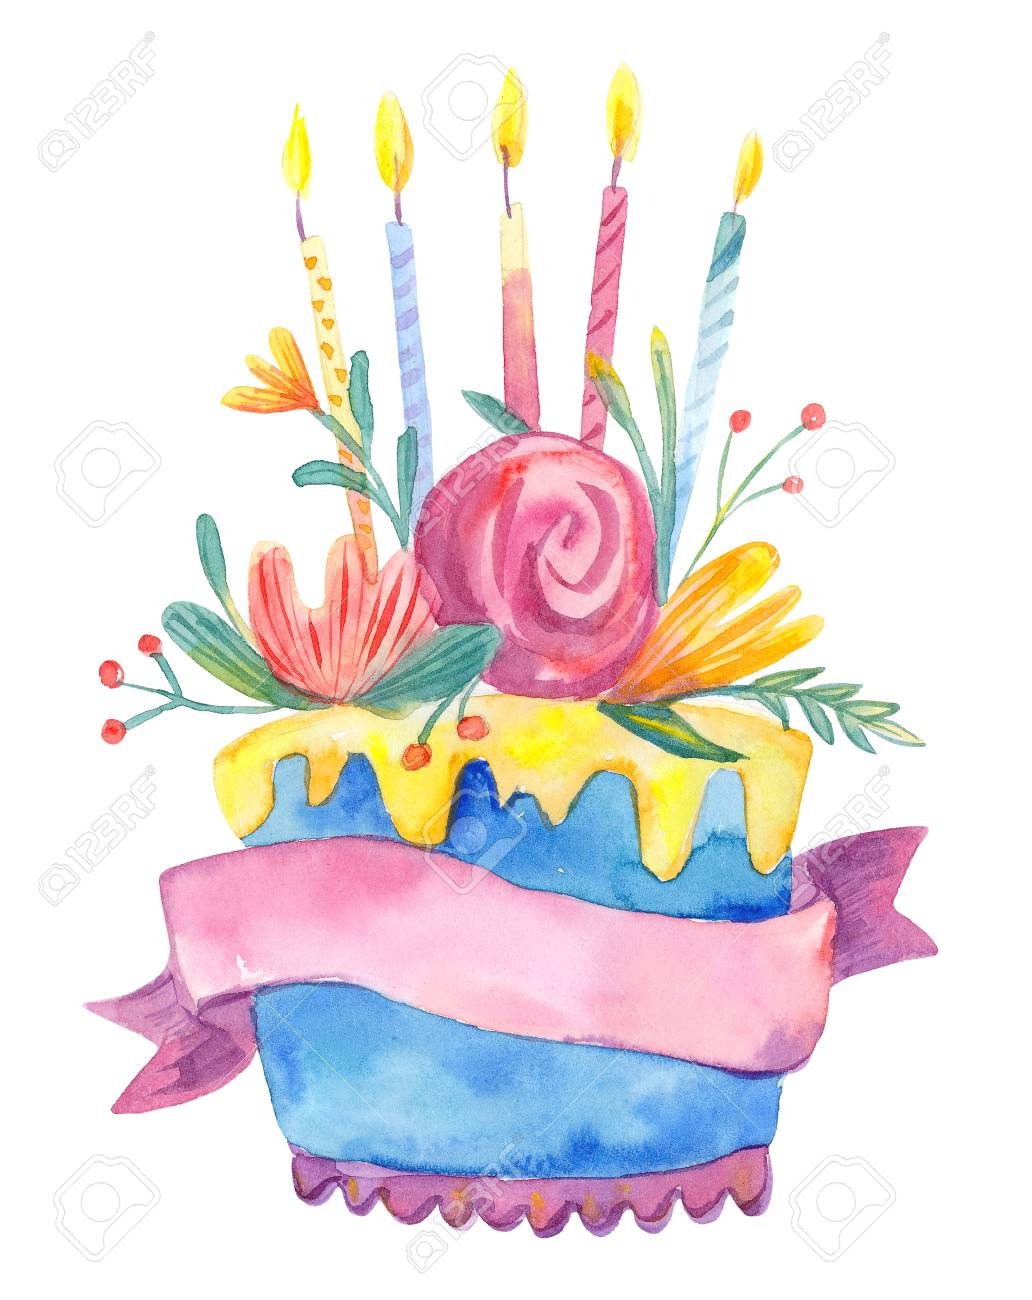 Watercolor Birthday Cake With Flowers And Candles Isolated On